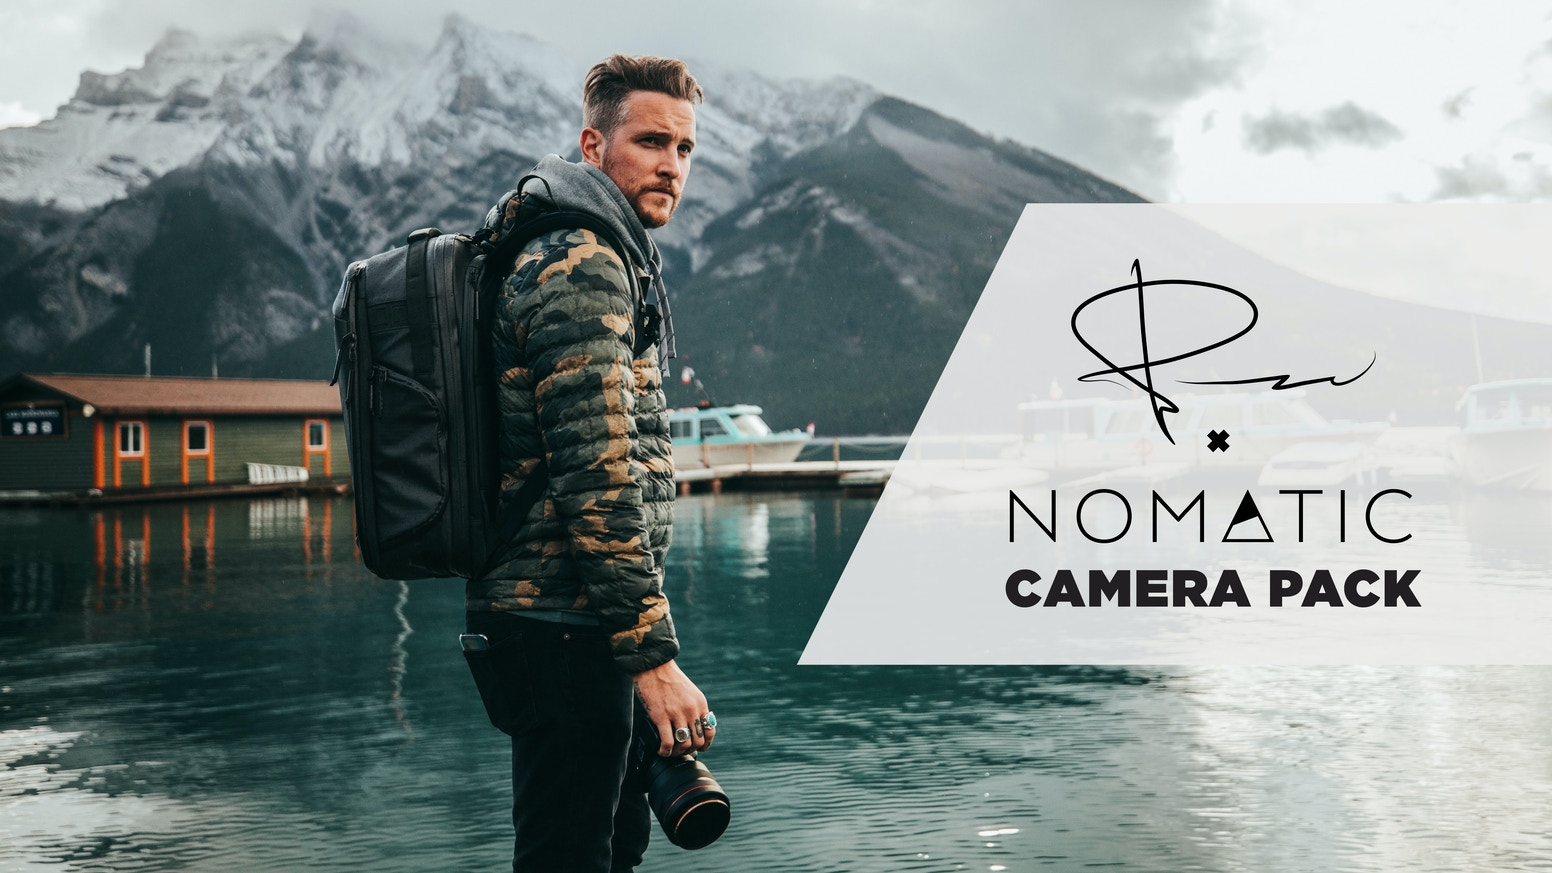 A Functional Camera Pack for all types of travelers!  Just you, one bag, and the adventure!